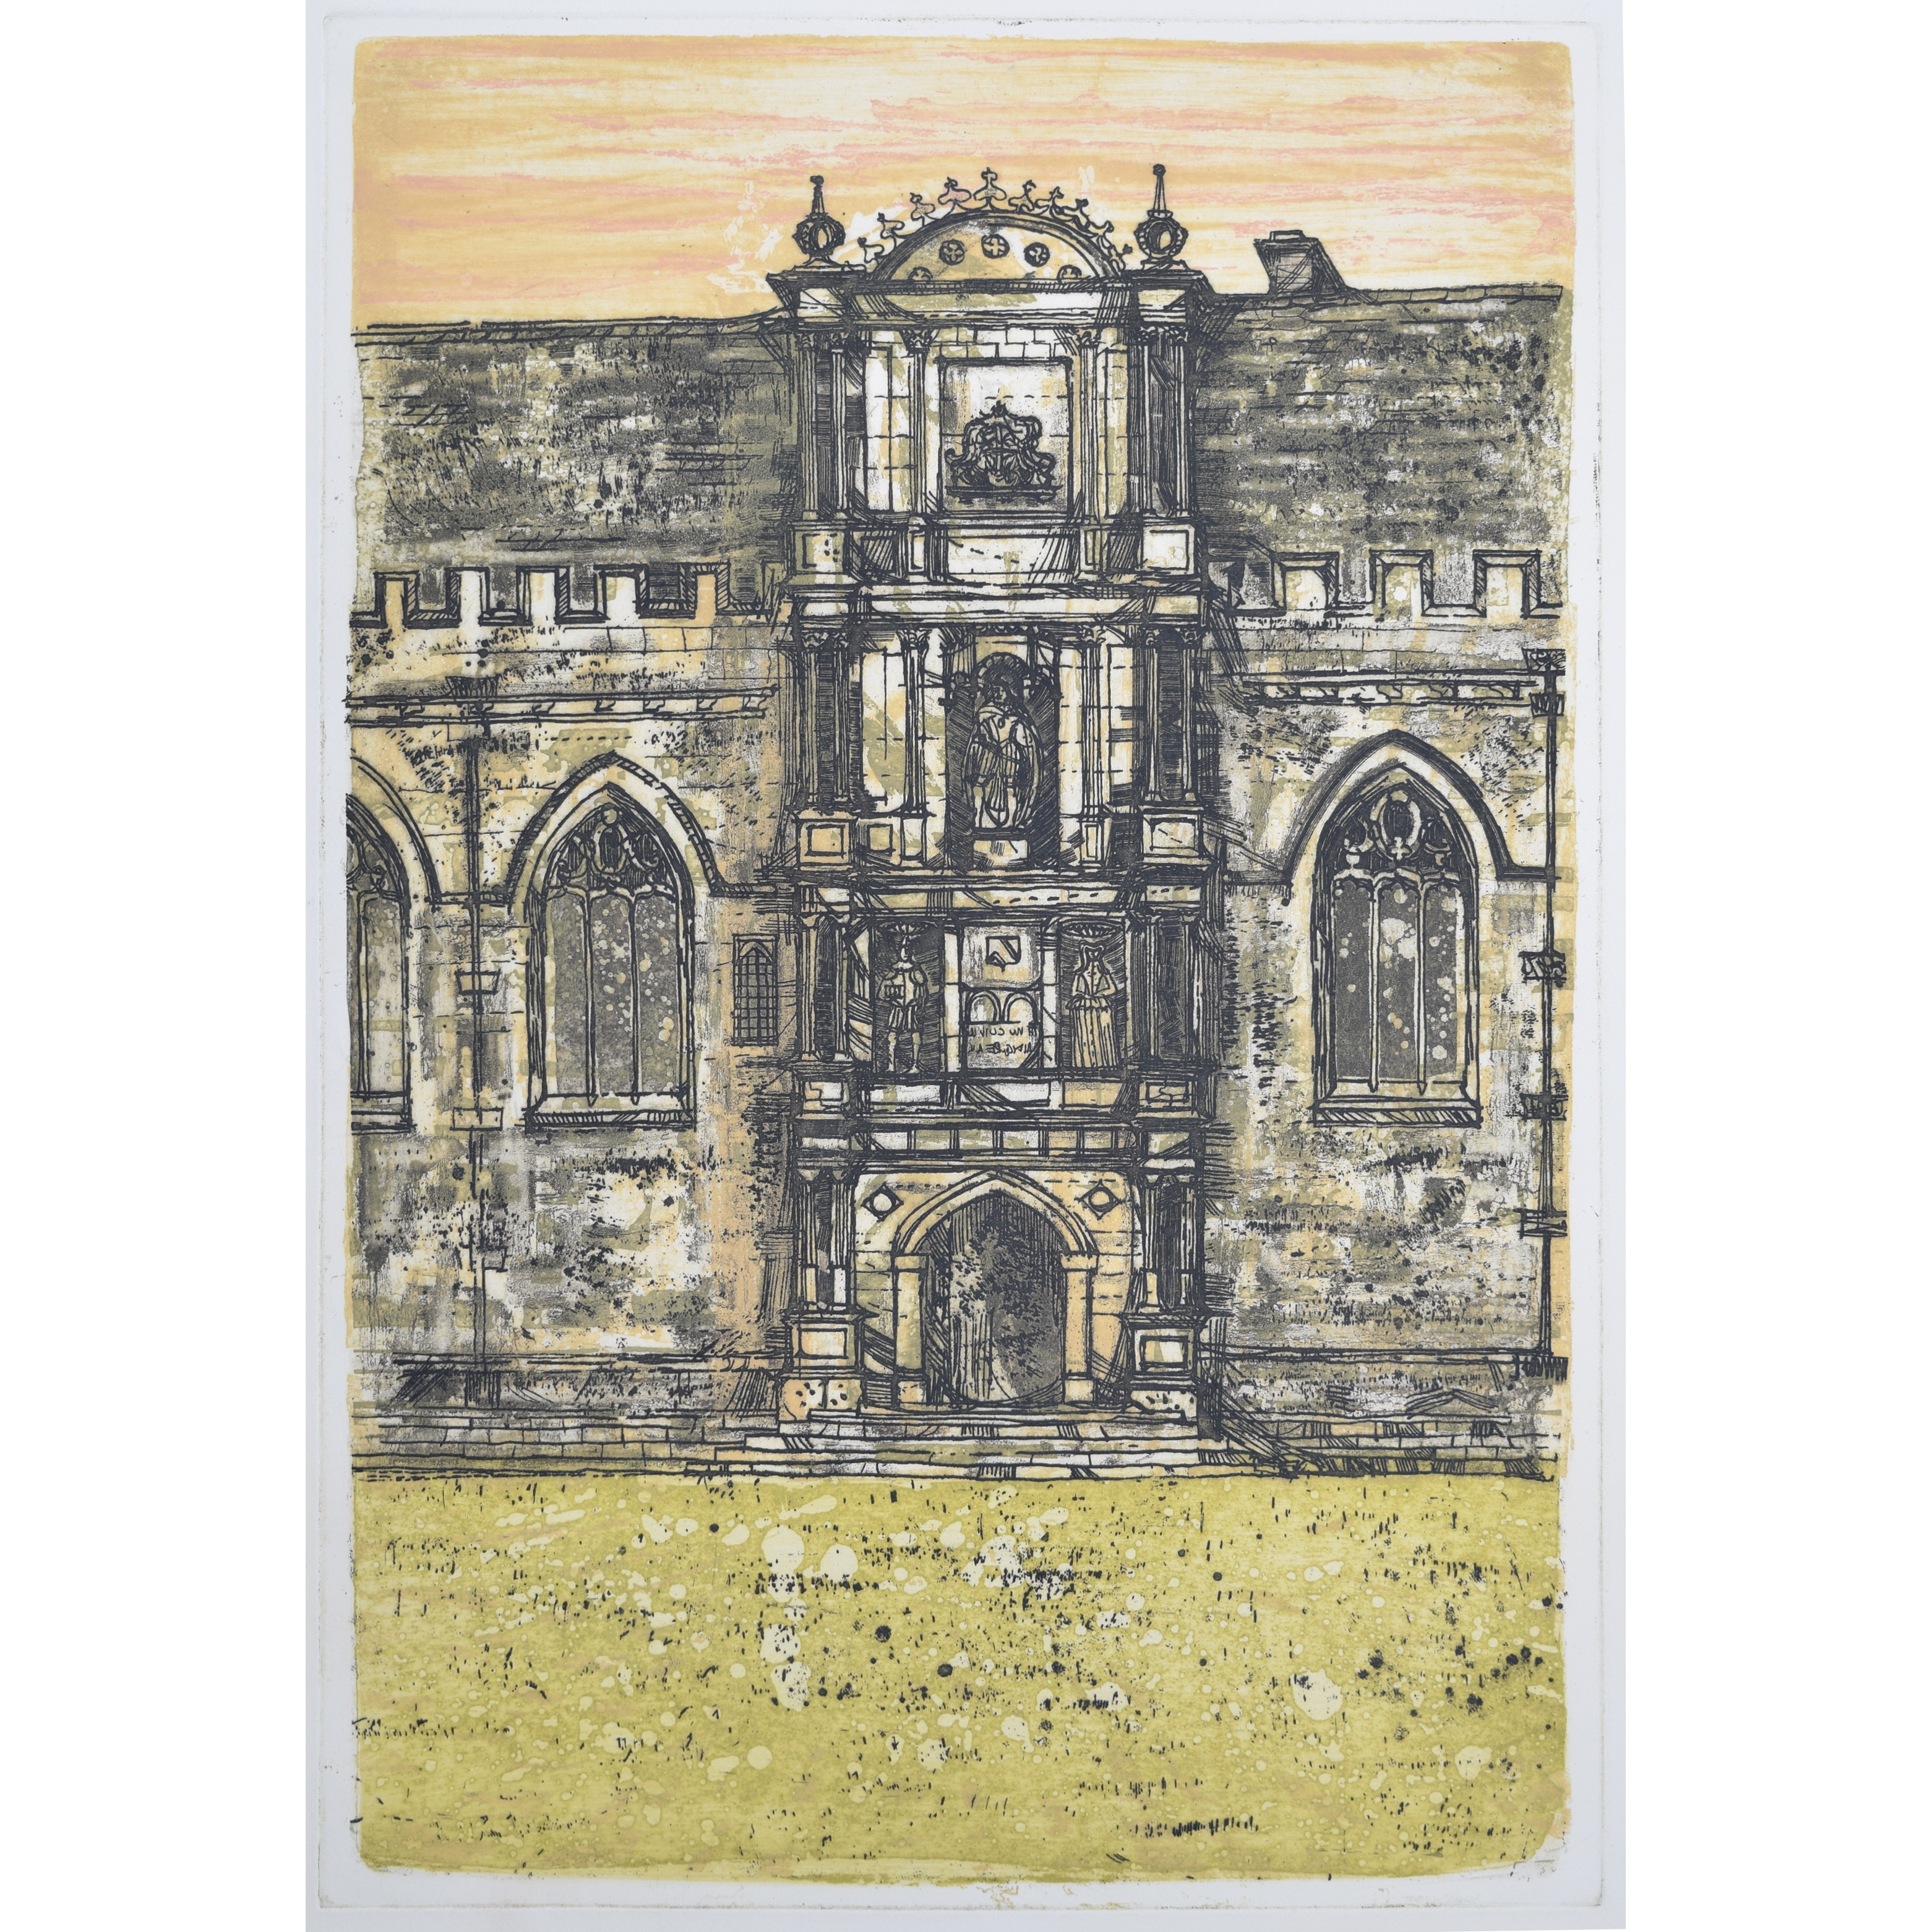 Richard Beer Wadham College, Oxford print for sale